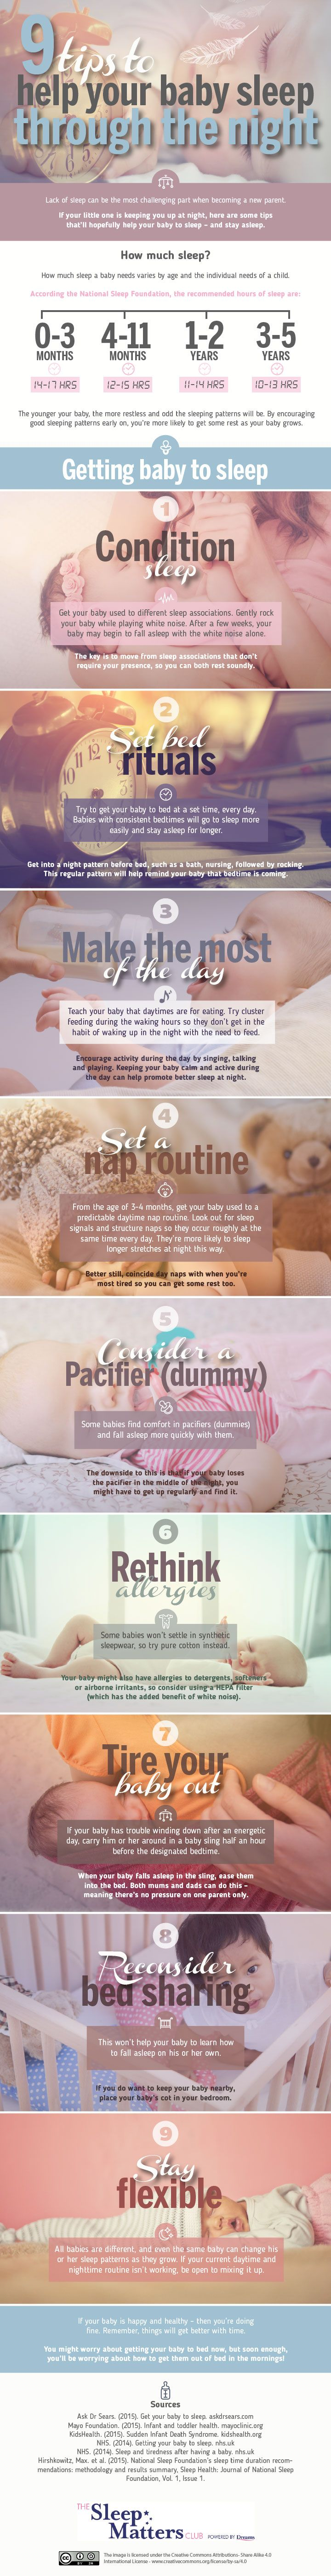 9 Tips To Help Your Baby Sleep Through The Night #infographic #Health #Sleep